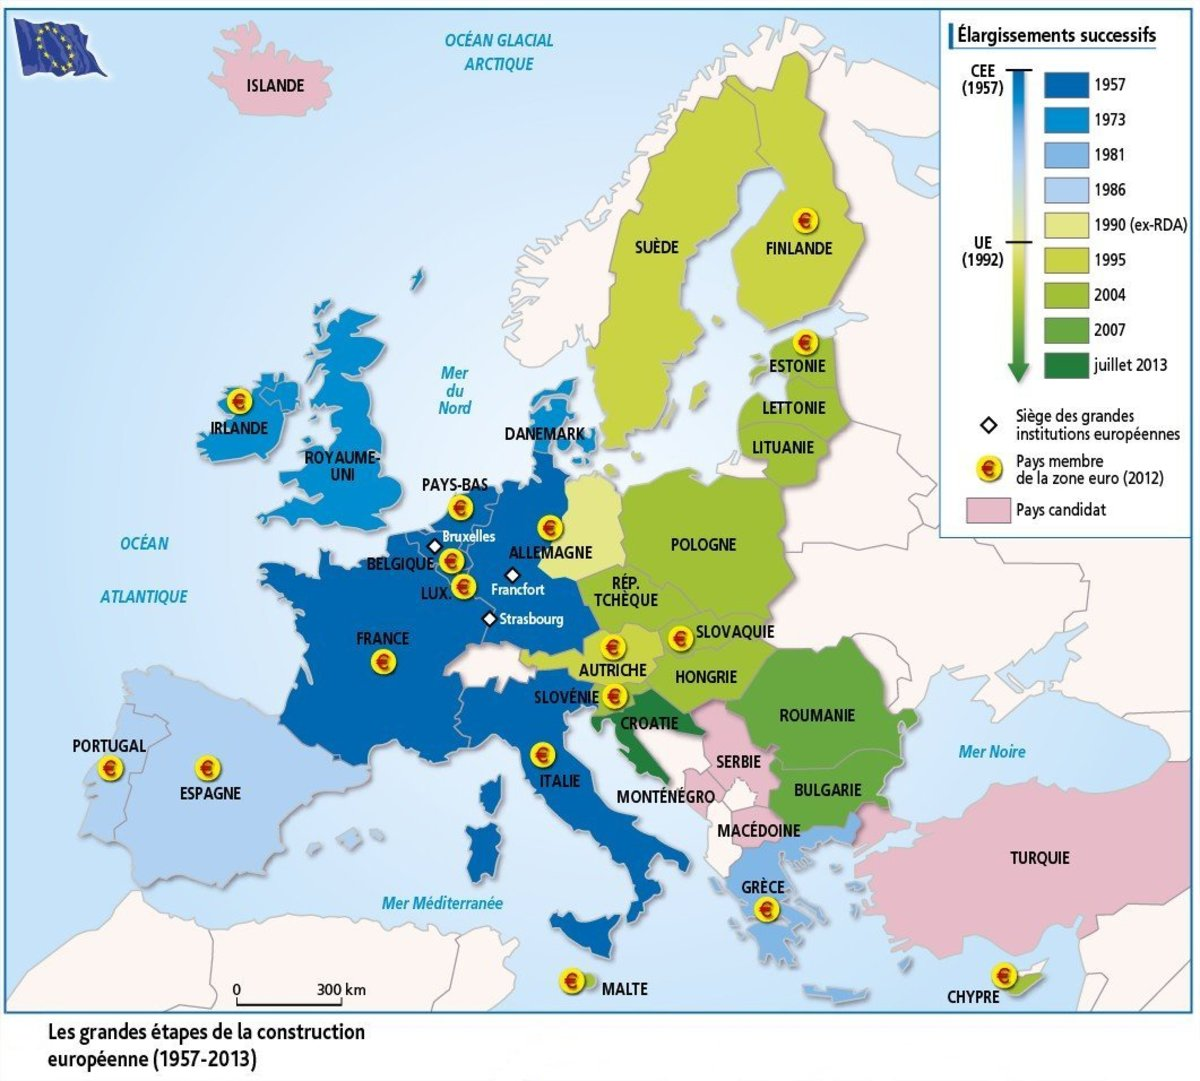 The biggest change concerning EU translation and language practices has been its evolving membership composition.